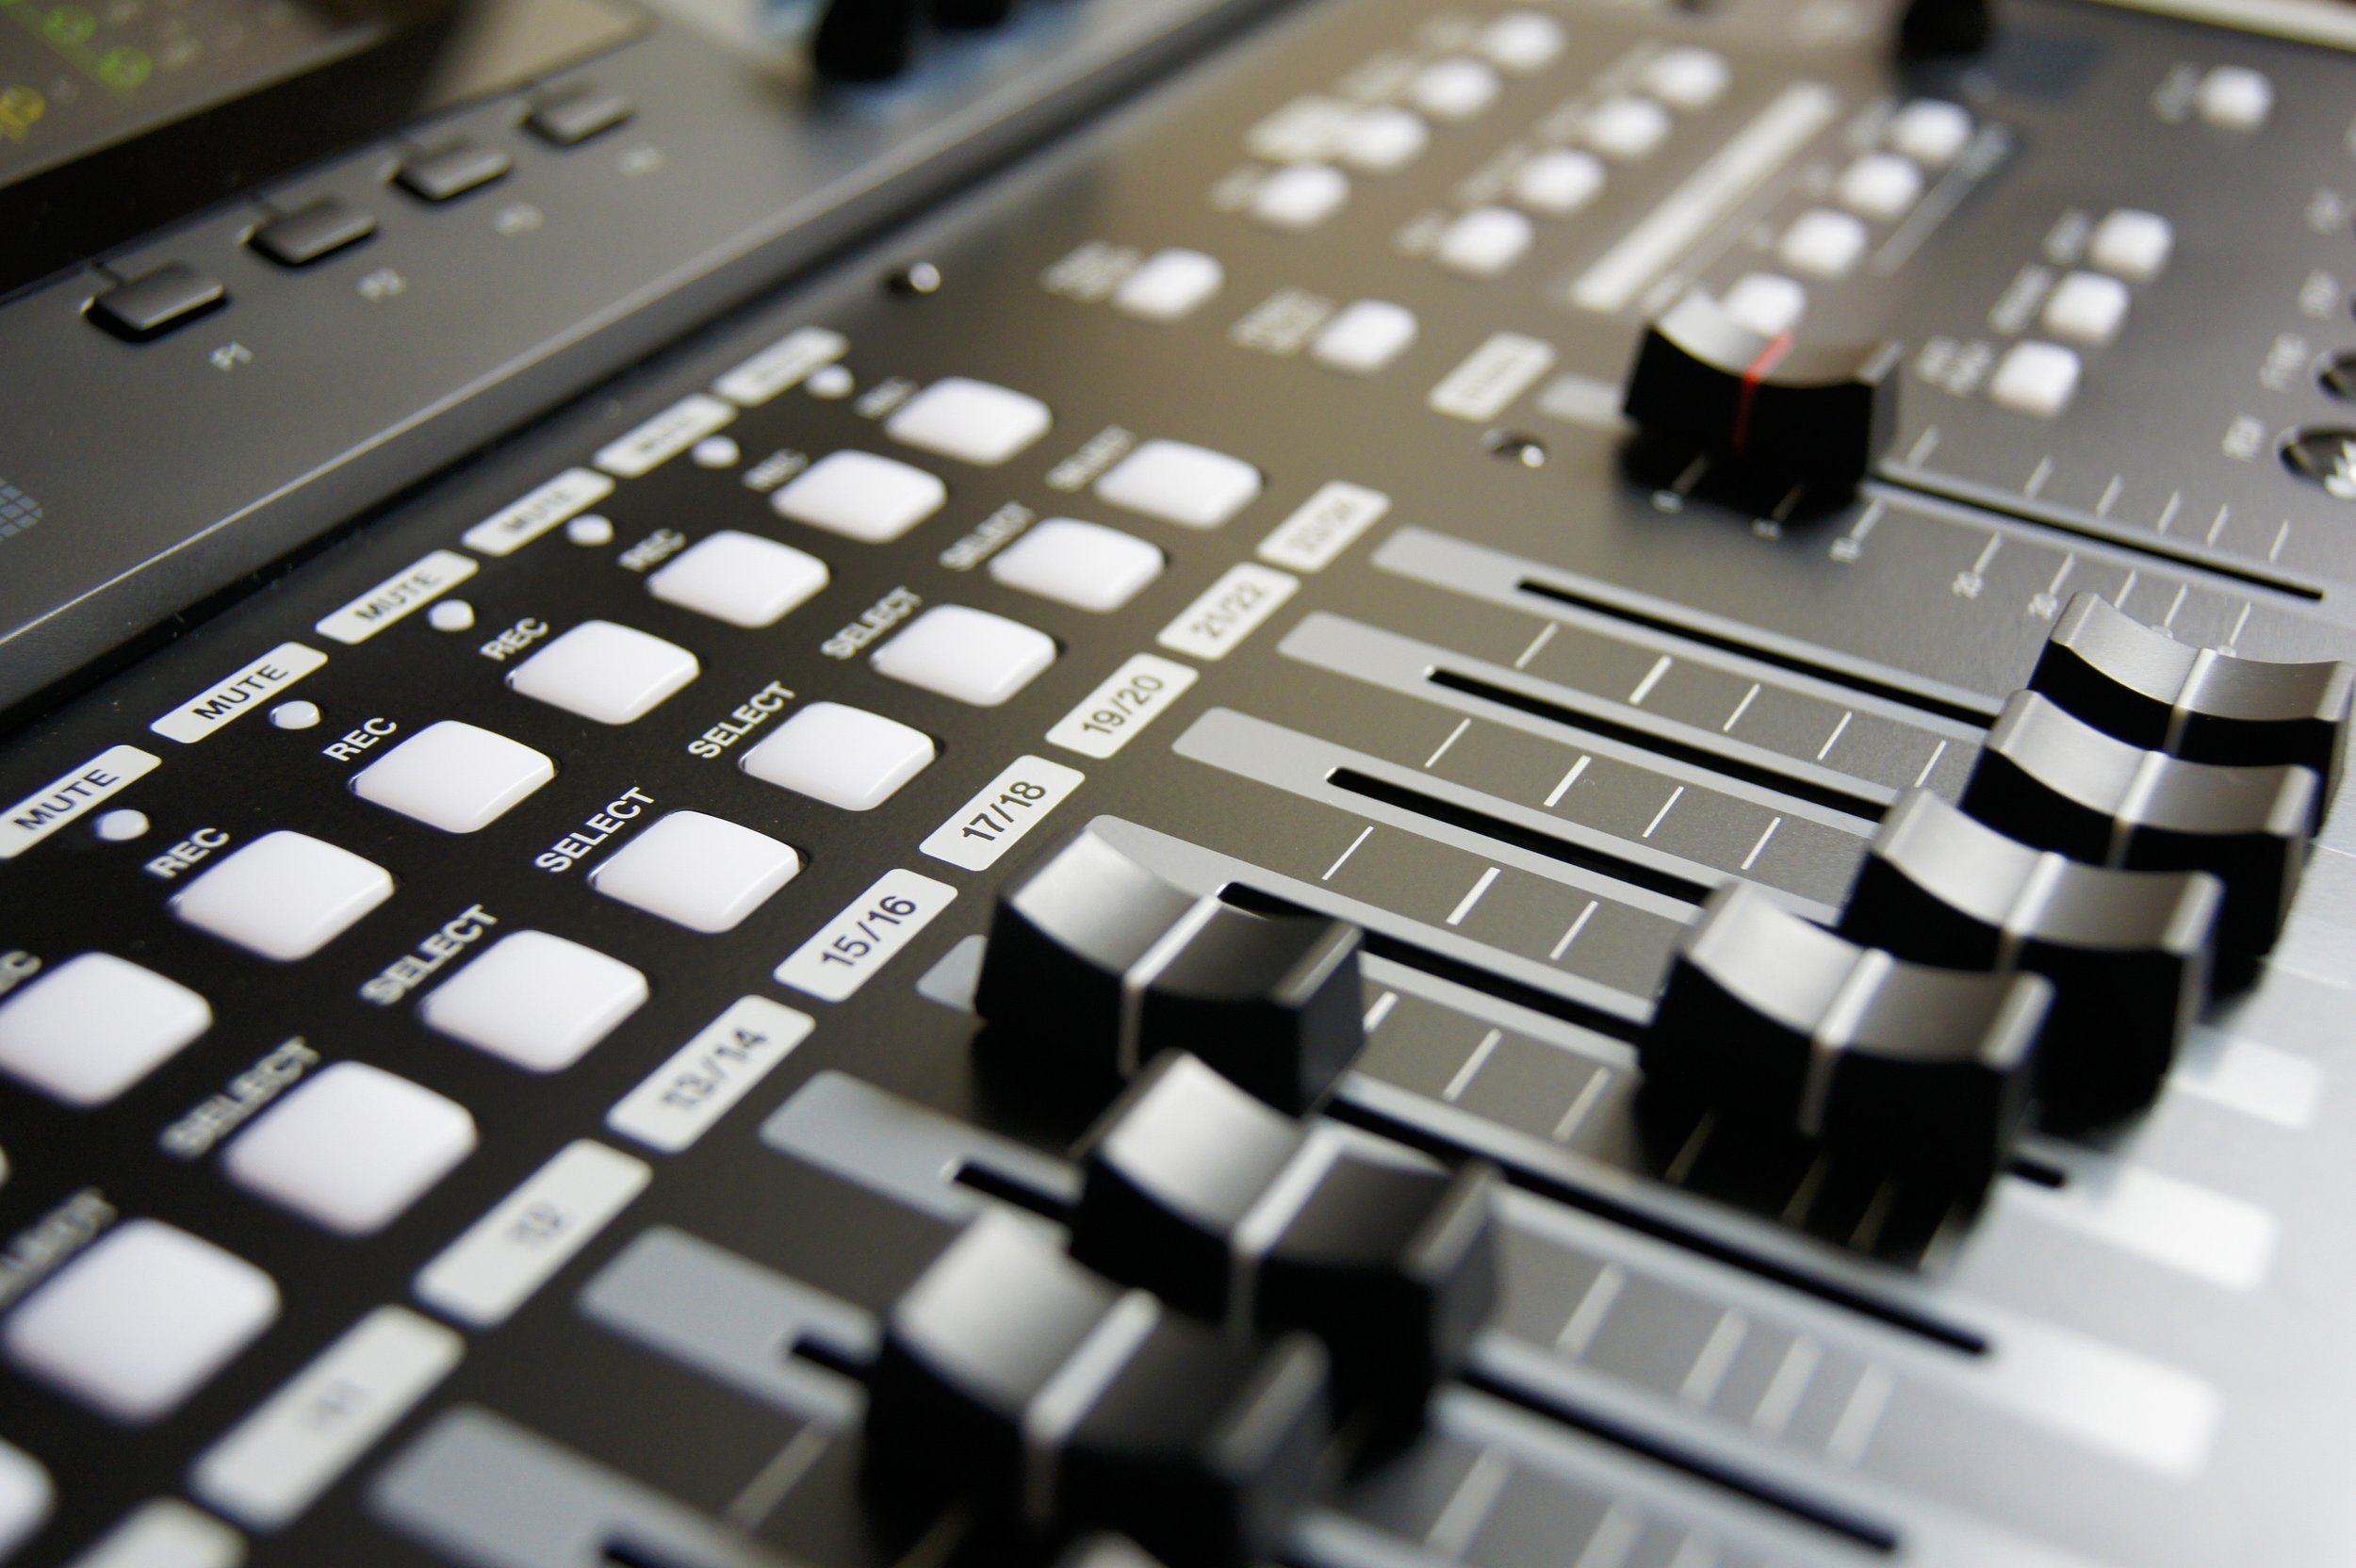 Audio - Our facilities include two state of the art recording studios with optional audio engineering services. There are no other audio production facilities like ours in the Cincinnati area.Click here to learn more about recording!